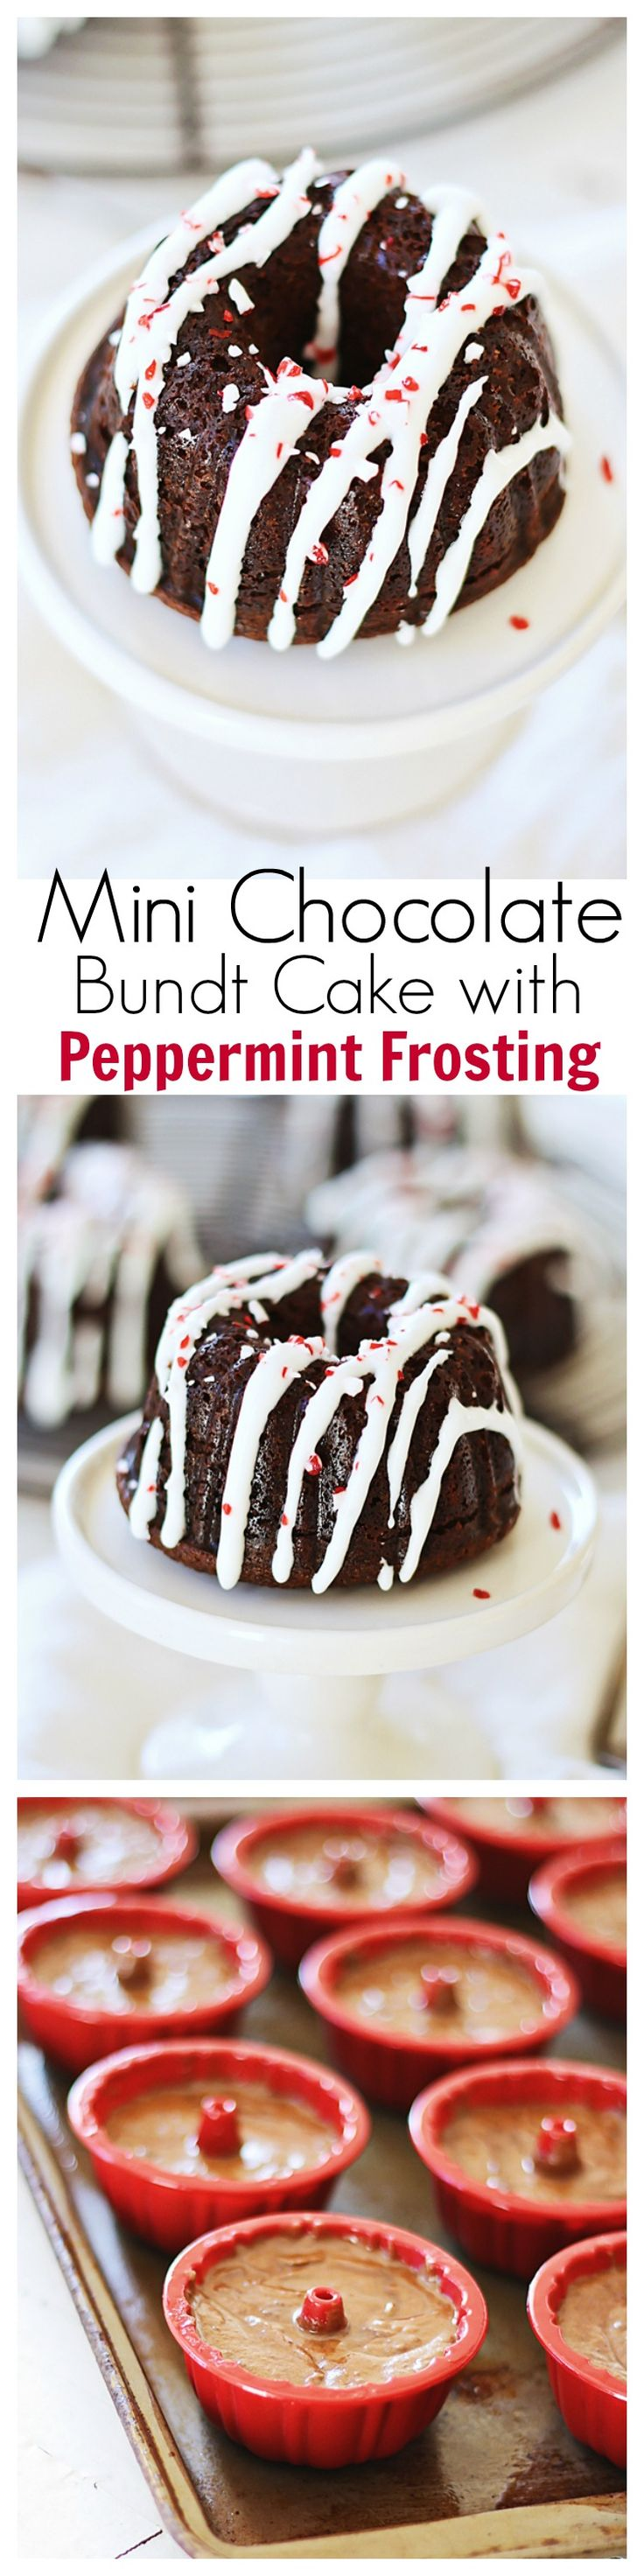 5527 best Crazy about Cakes! images on Pinterest | Desert recipes ...